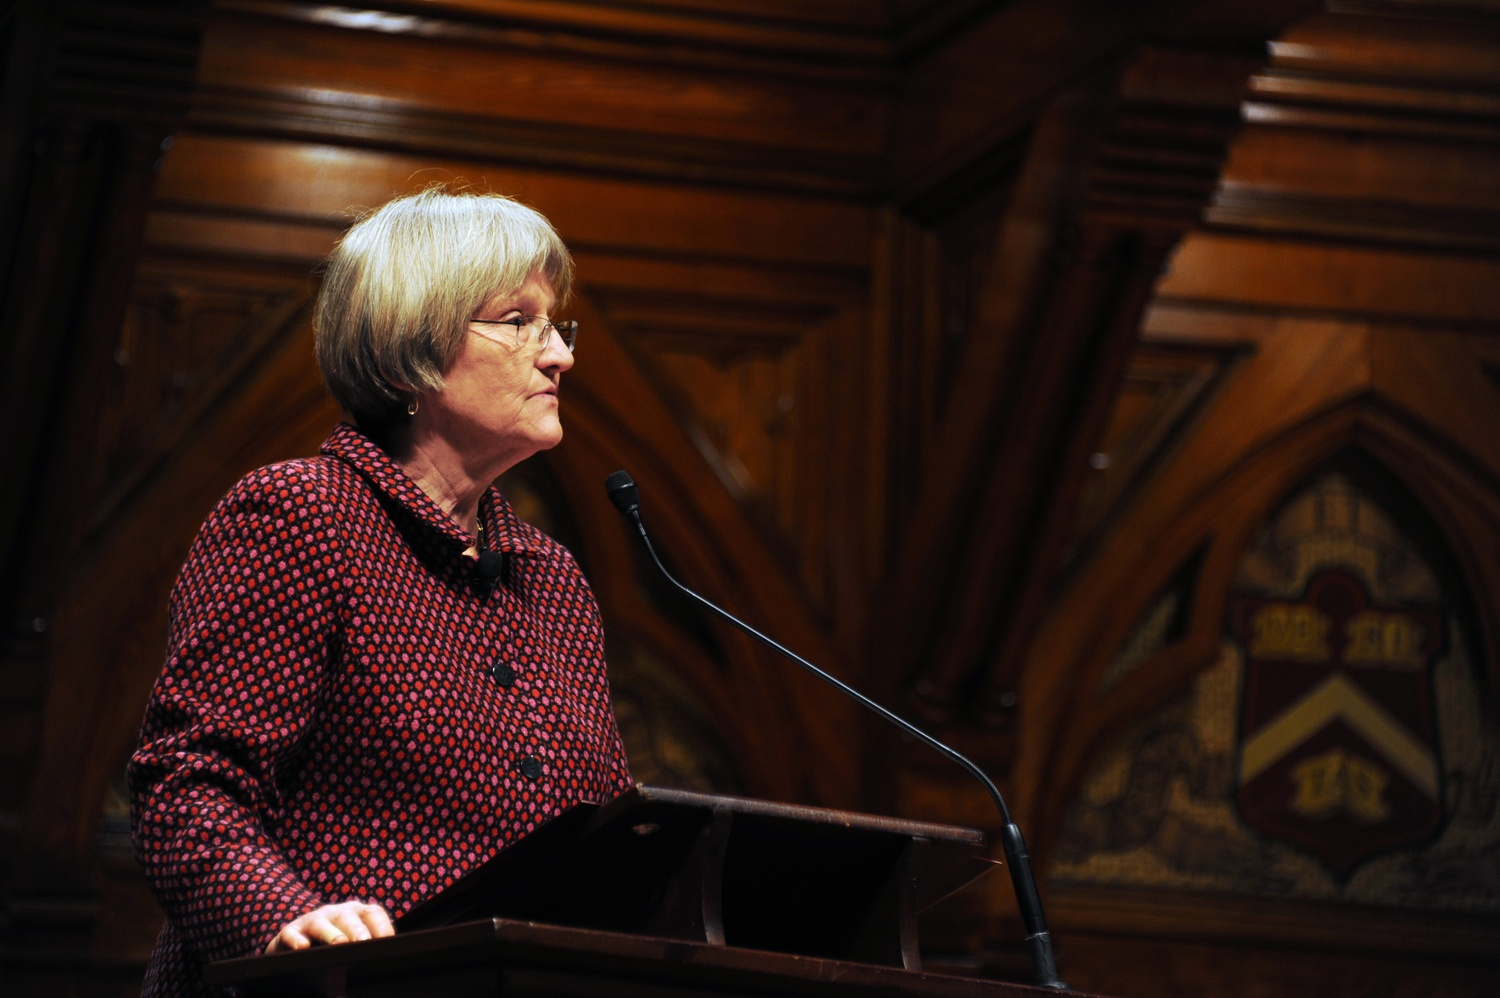 University President Drew G. Faust announced Wednesday that she will step down at the end of the 2017-18 academic year.